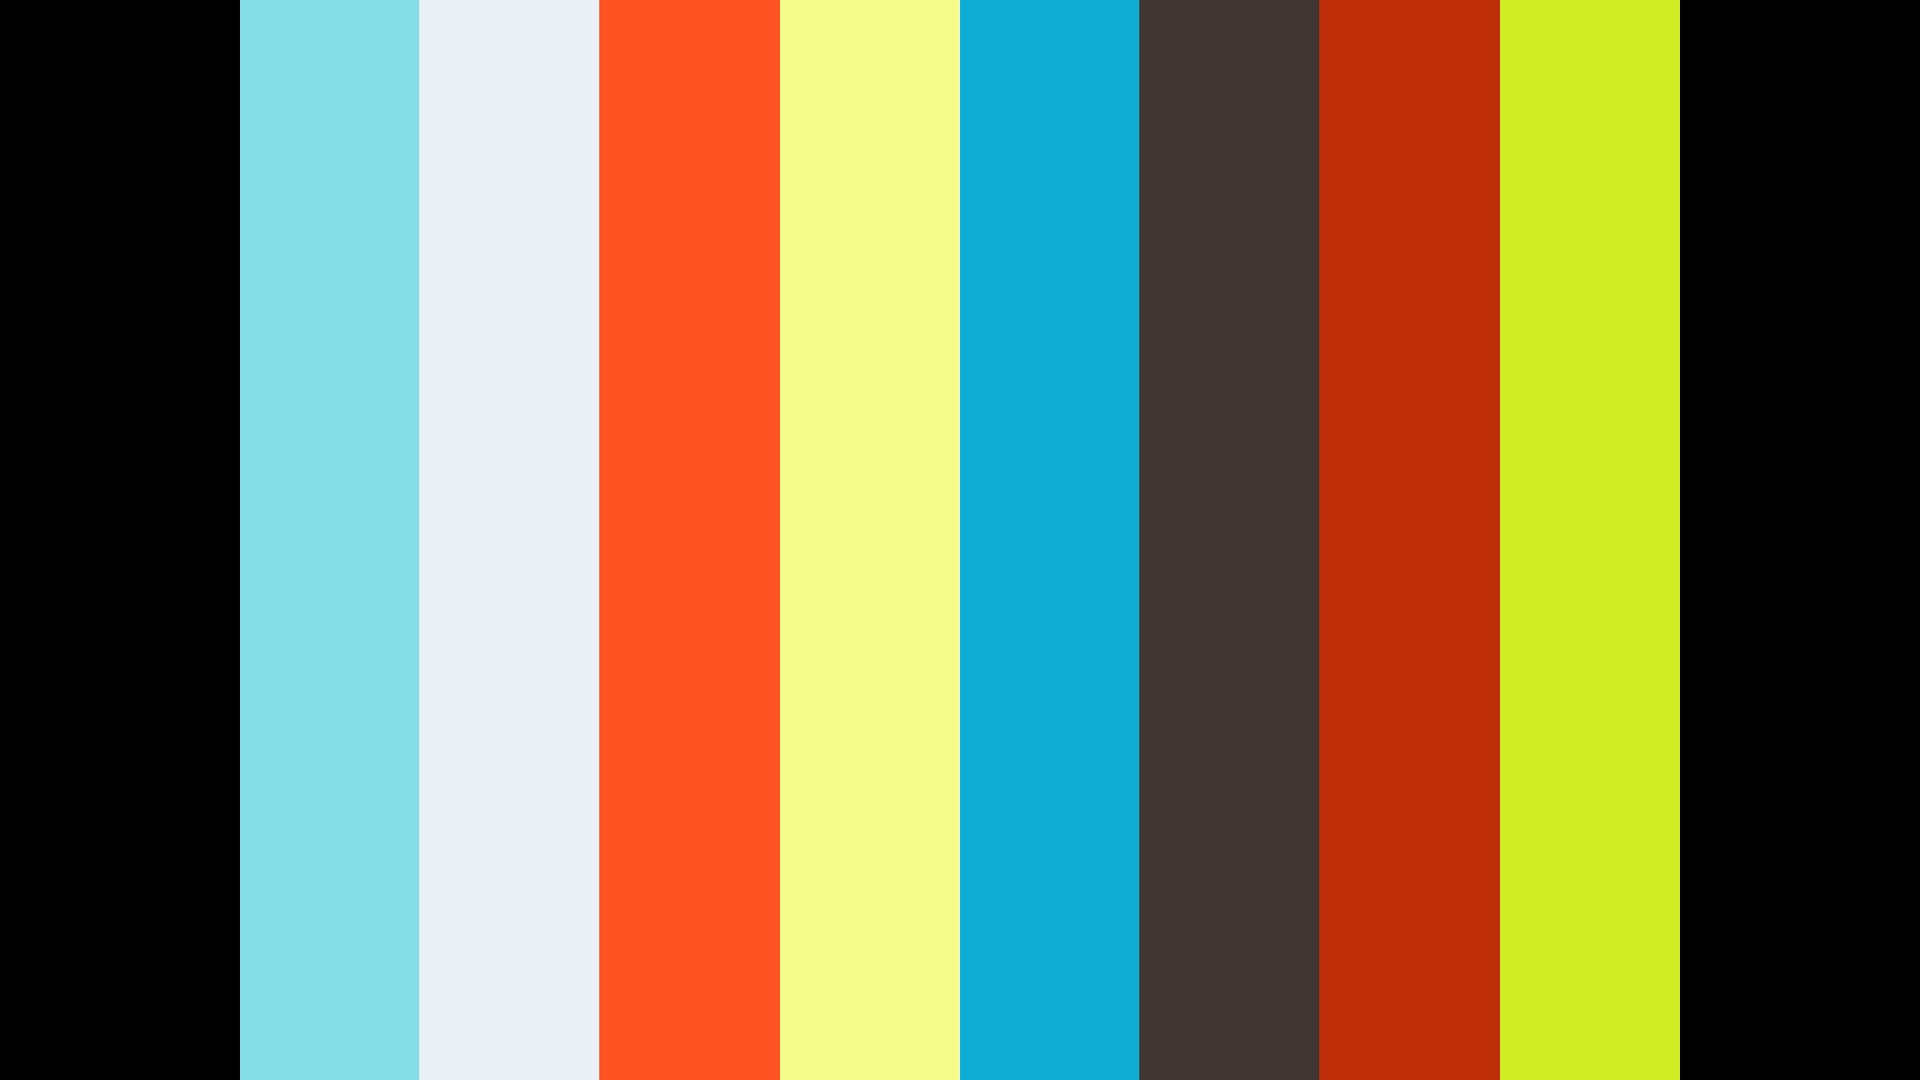 Market News #89. Q3 results: BP, Spotify. Microsoft wins Pentagon's $10B contract.